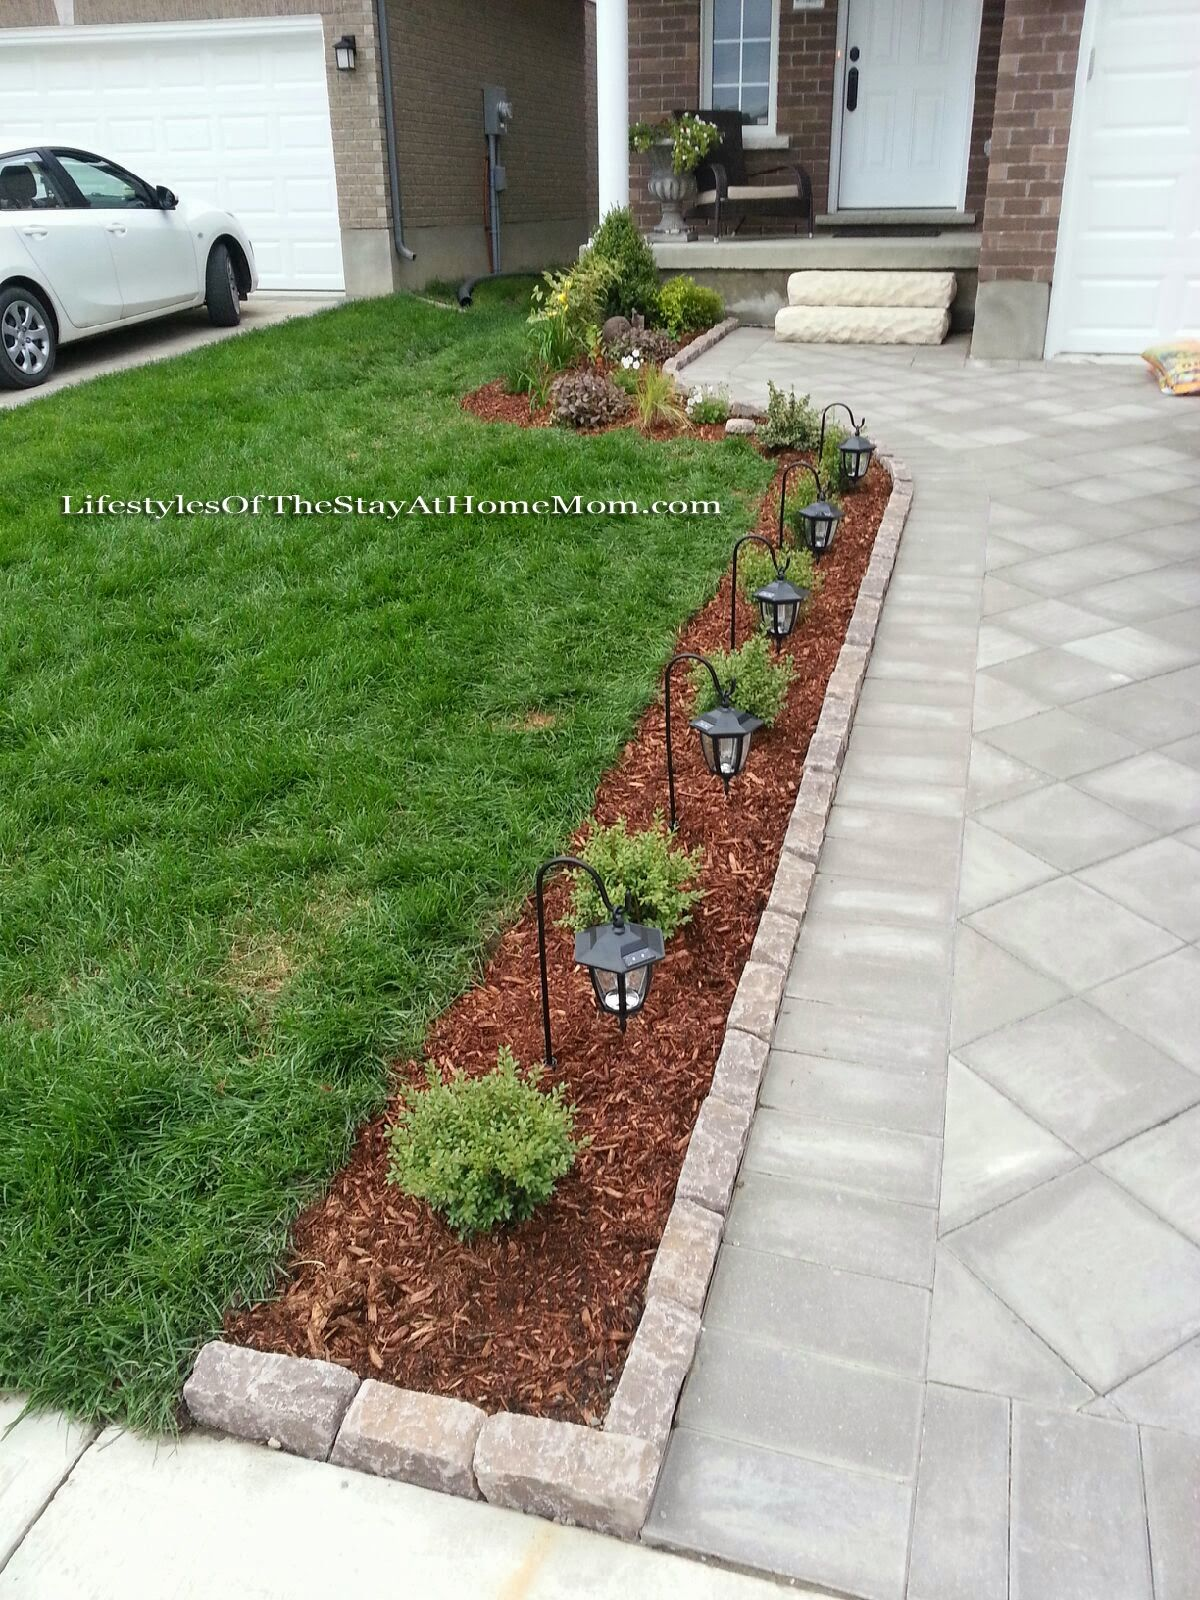 Curb Eal Brick Pavers On End To Line A Small Flower Bed Along The Driveway